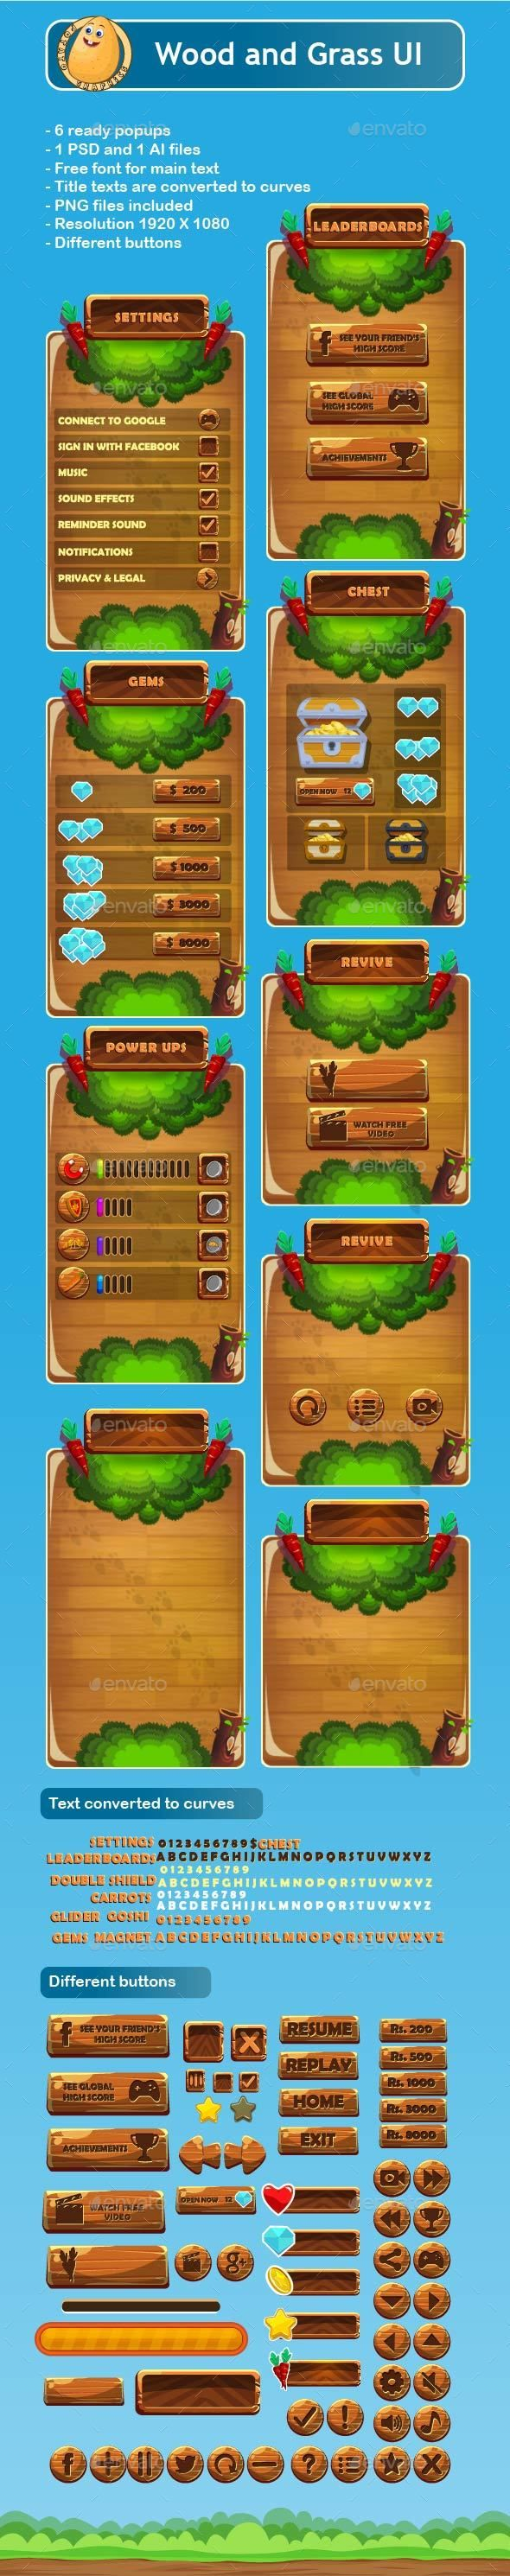 Wood and Grass Game UI | Download: https://graphicriver.net/item/wood-and-grass-game-ui/18057210?ref=sinzo #Interfaces #Game #Assets